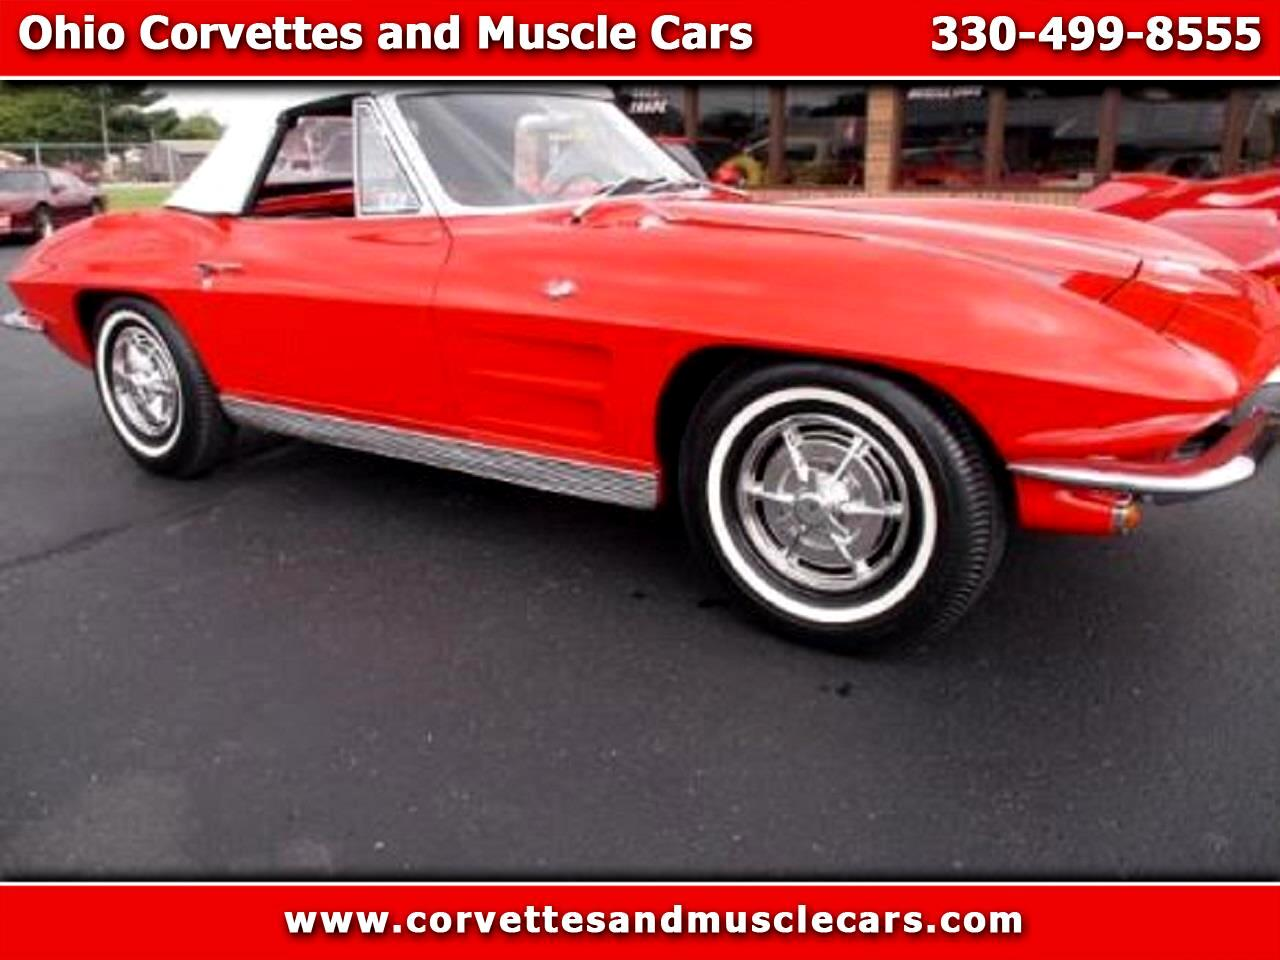 1963 Chevrolet Corvette Sting Ray photo